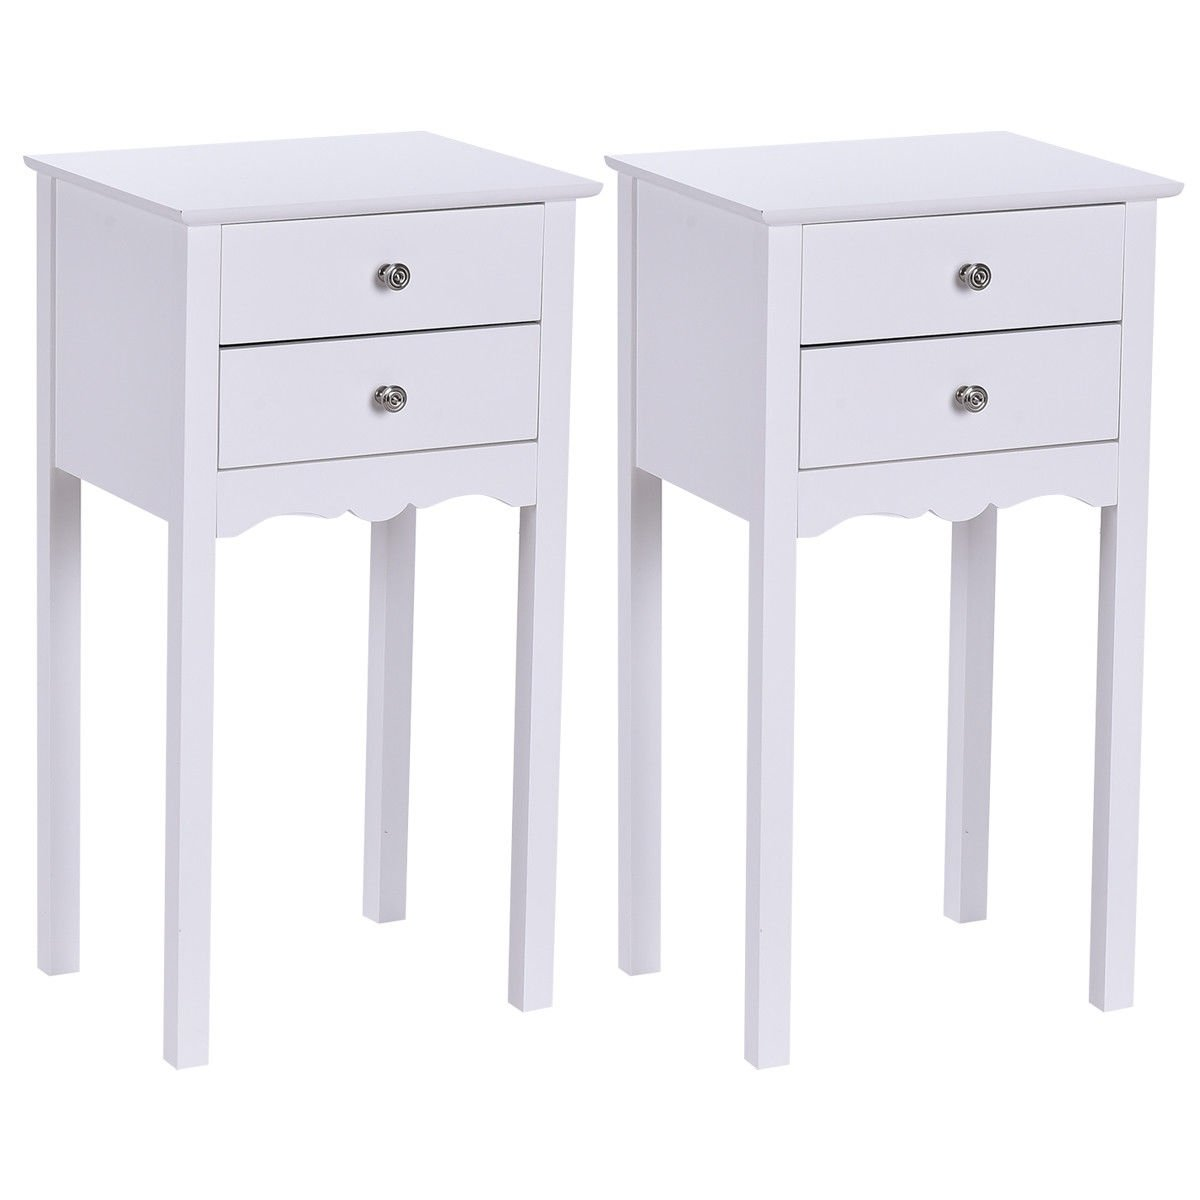 gymax pcs side table end accent night stand drawers white free shipping today pottery barn dining set steel bedside target industrial coffee tall mirror unfinished furniture